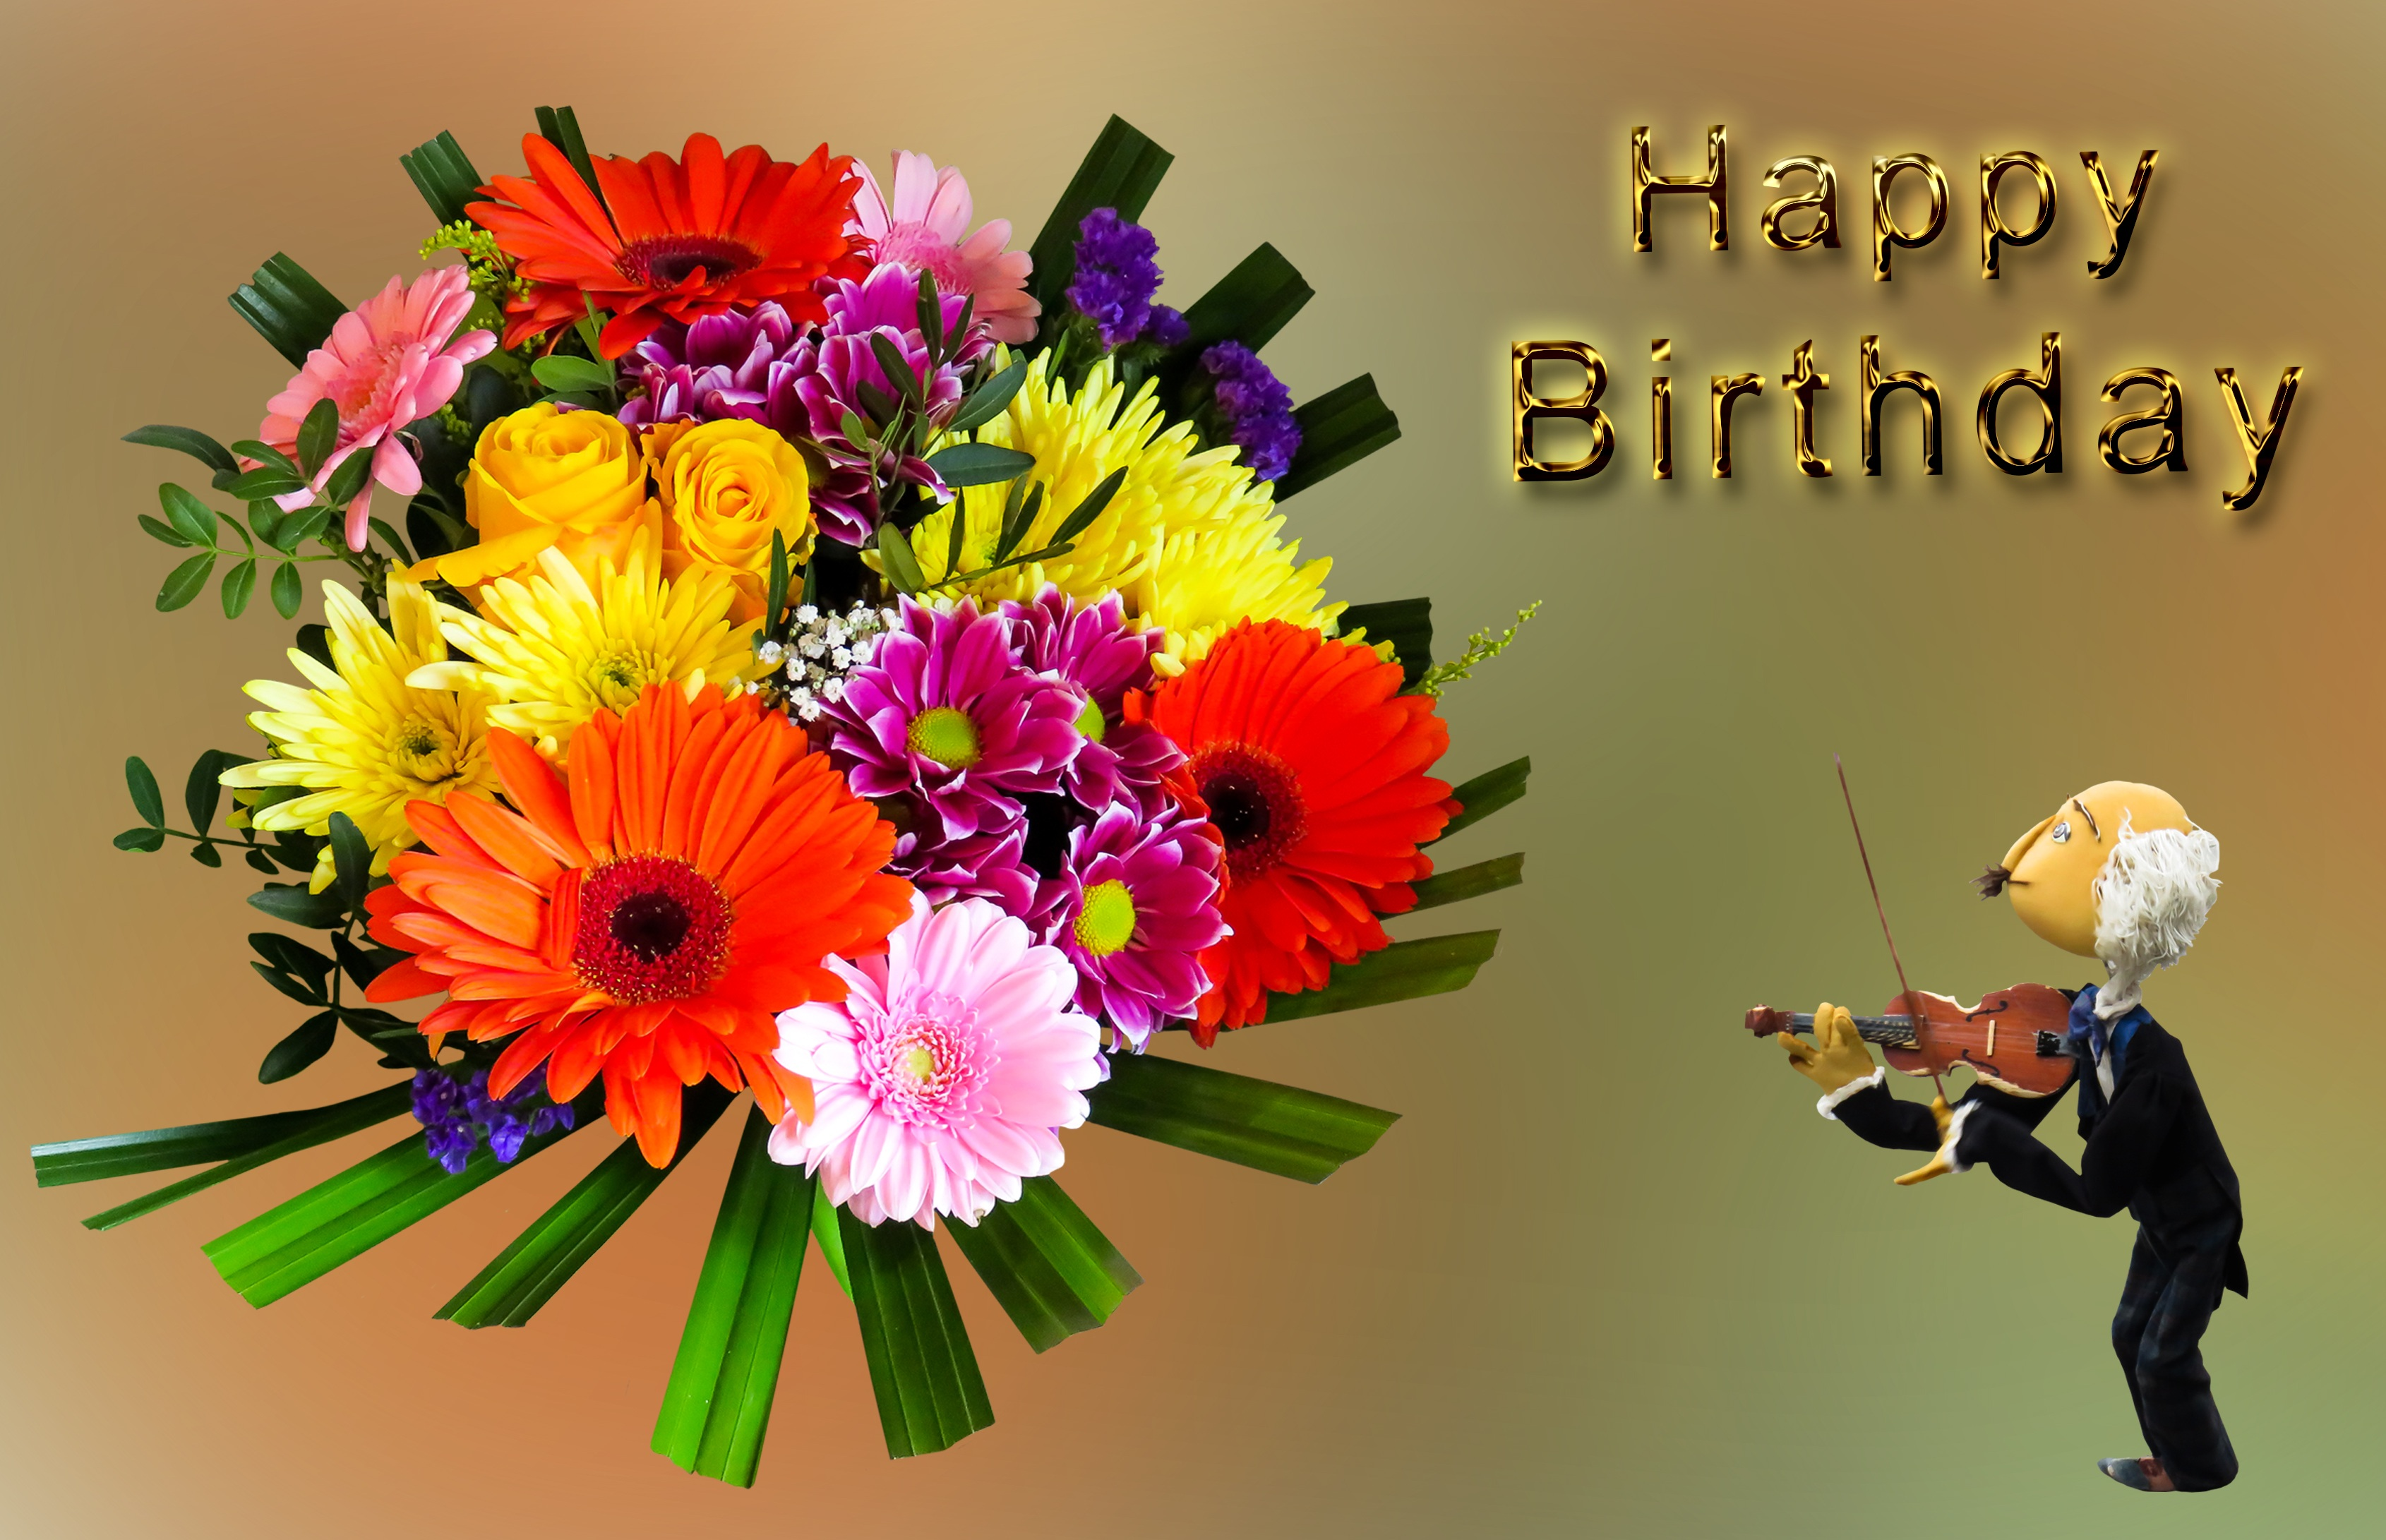 Birthday Greeting Card With Flower Bouquet And Violinist